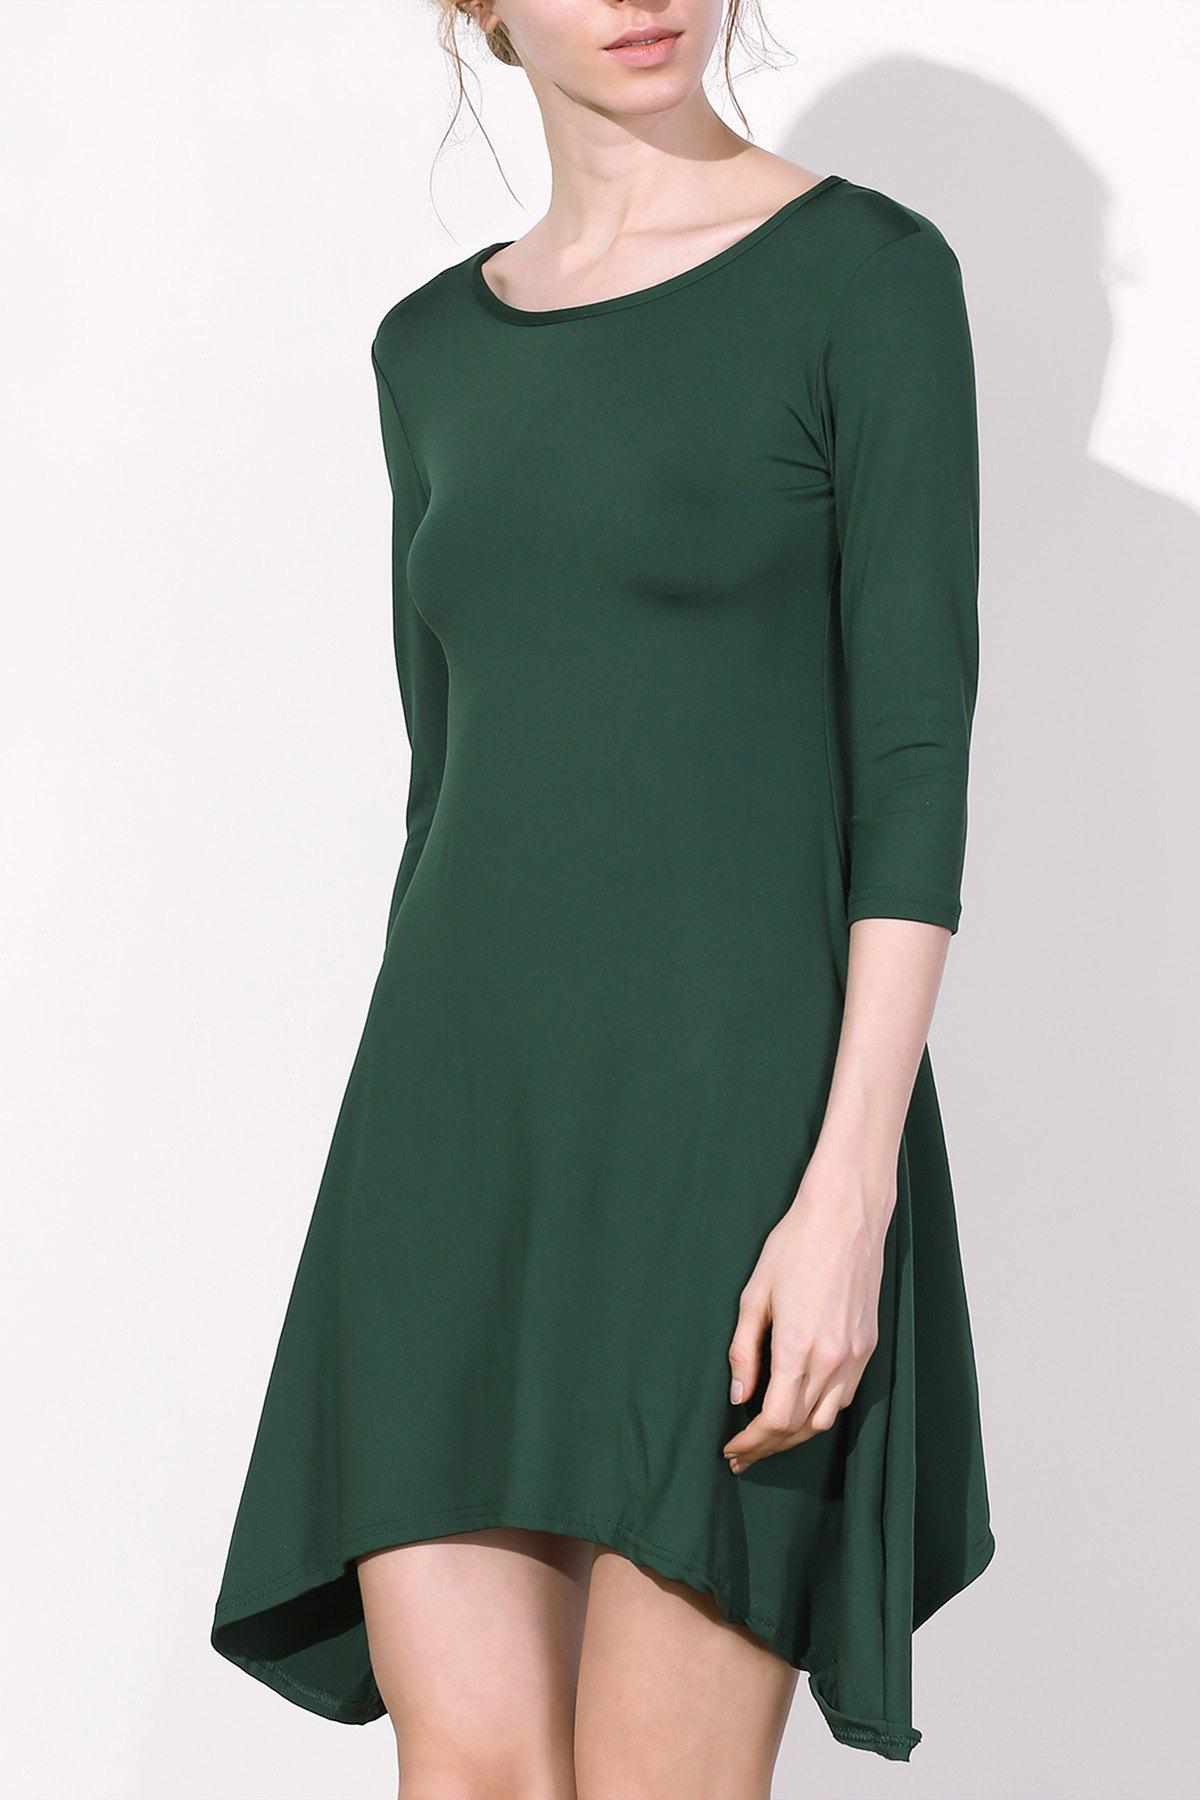 Online Casual Scoop Neck 3/4 Sleeve Solid Color Asymmetrical Women's Dress